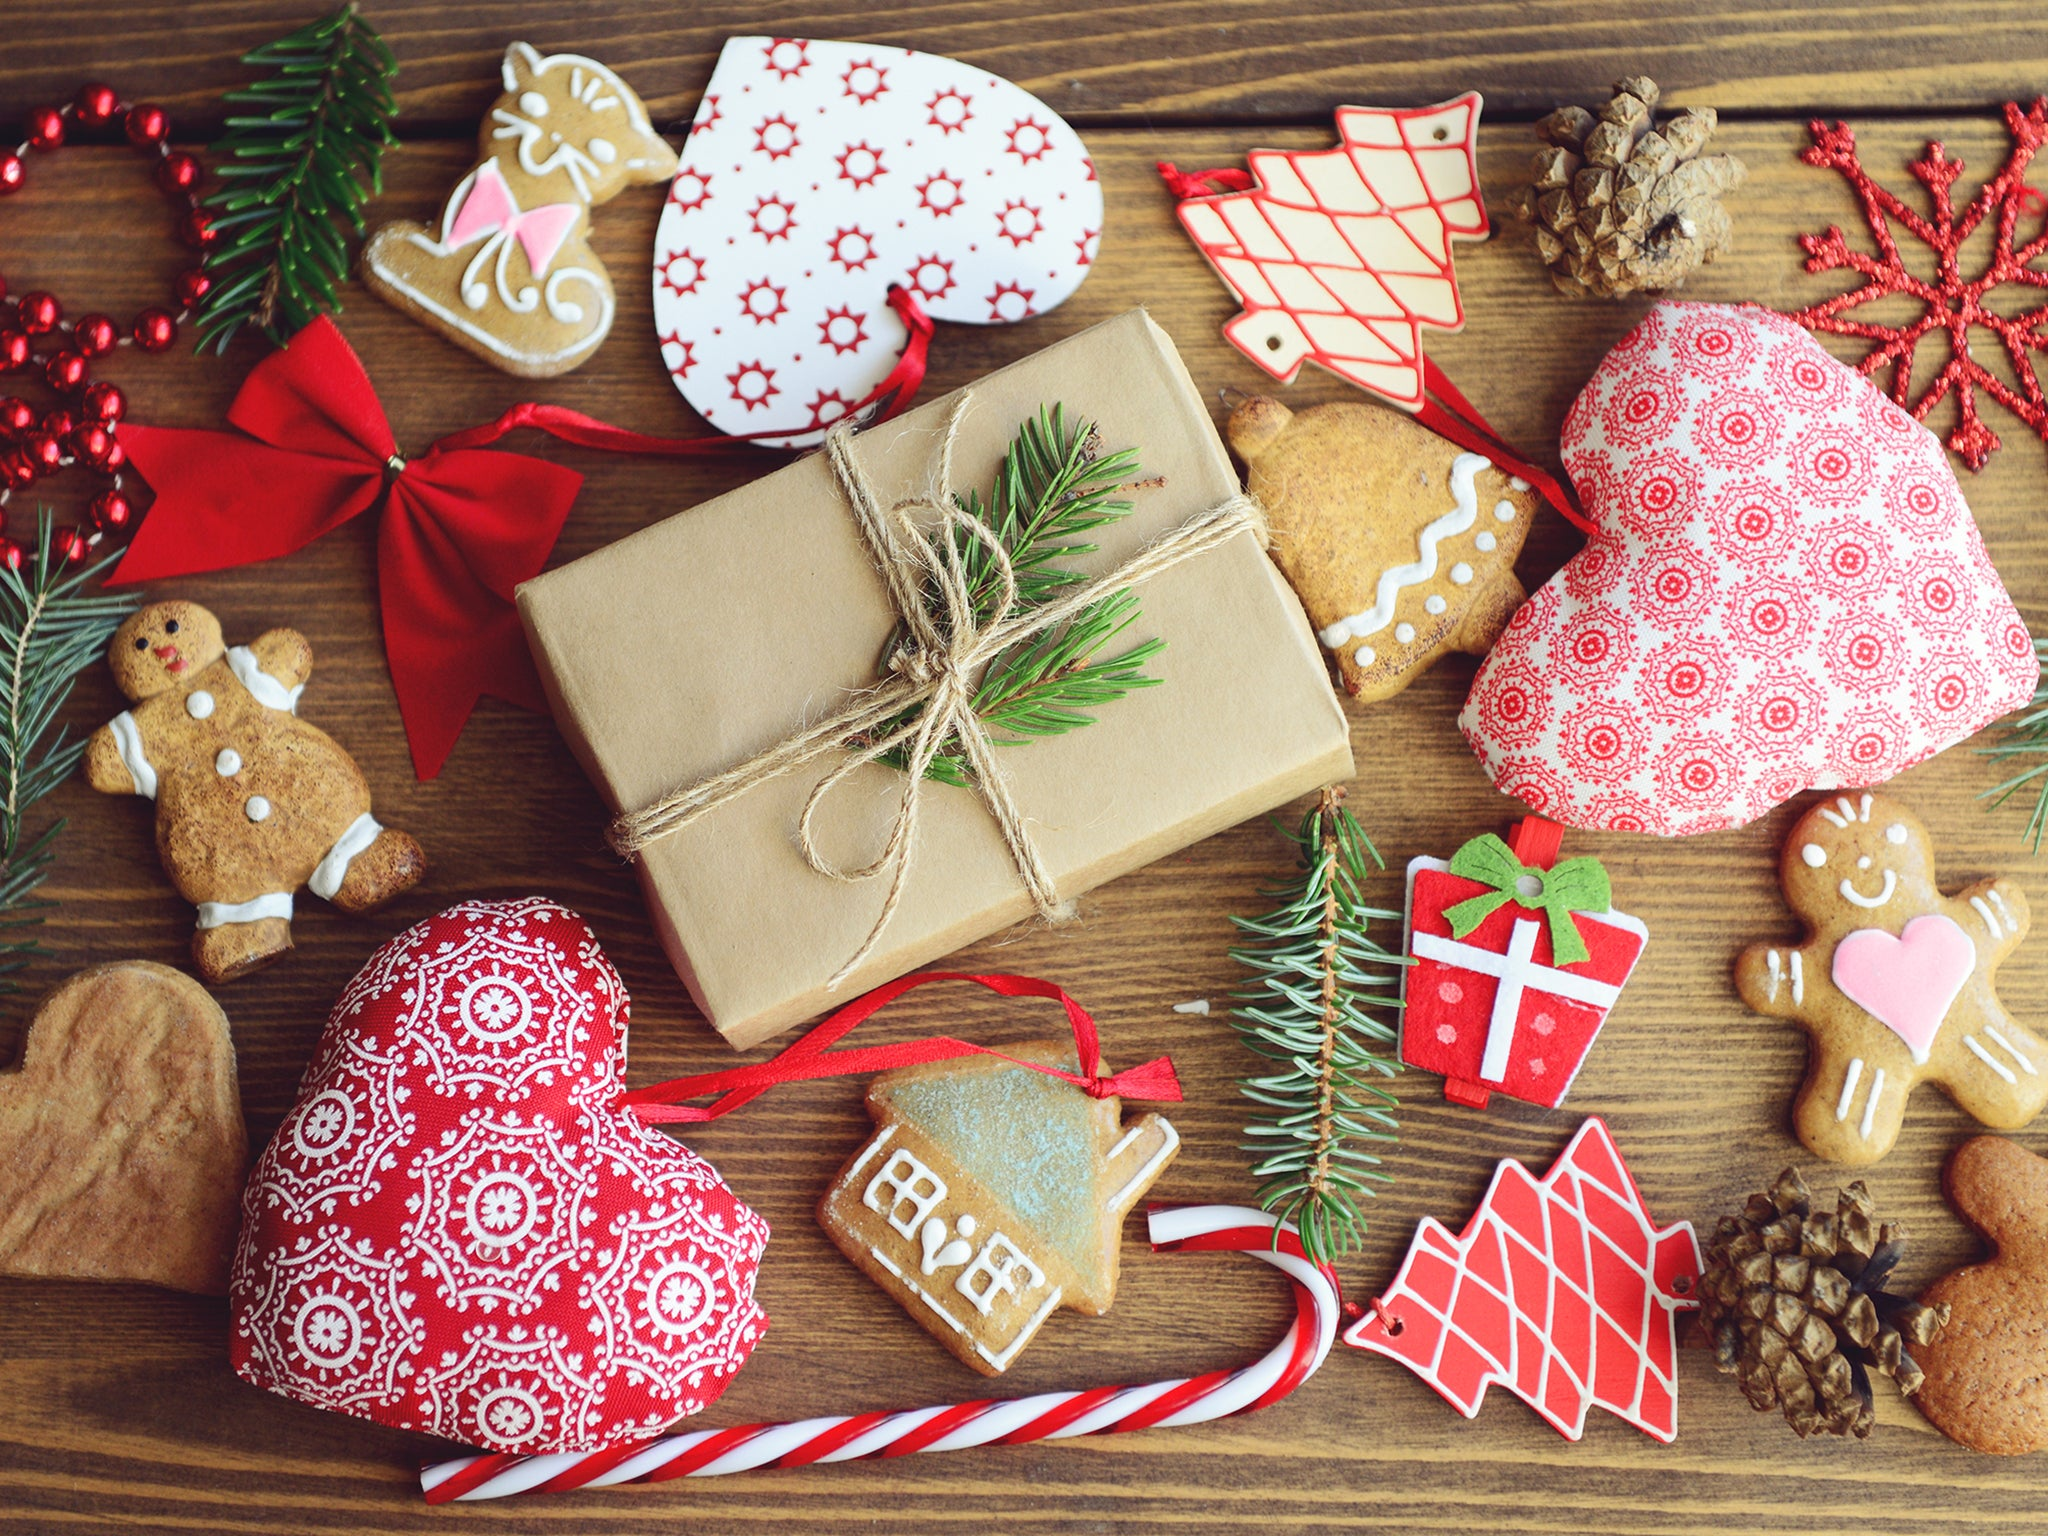 Festive packaging: we create masterpieces with our own hands 80